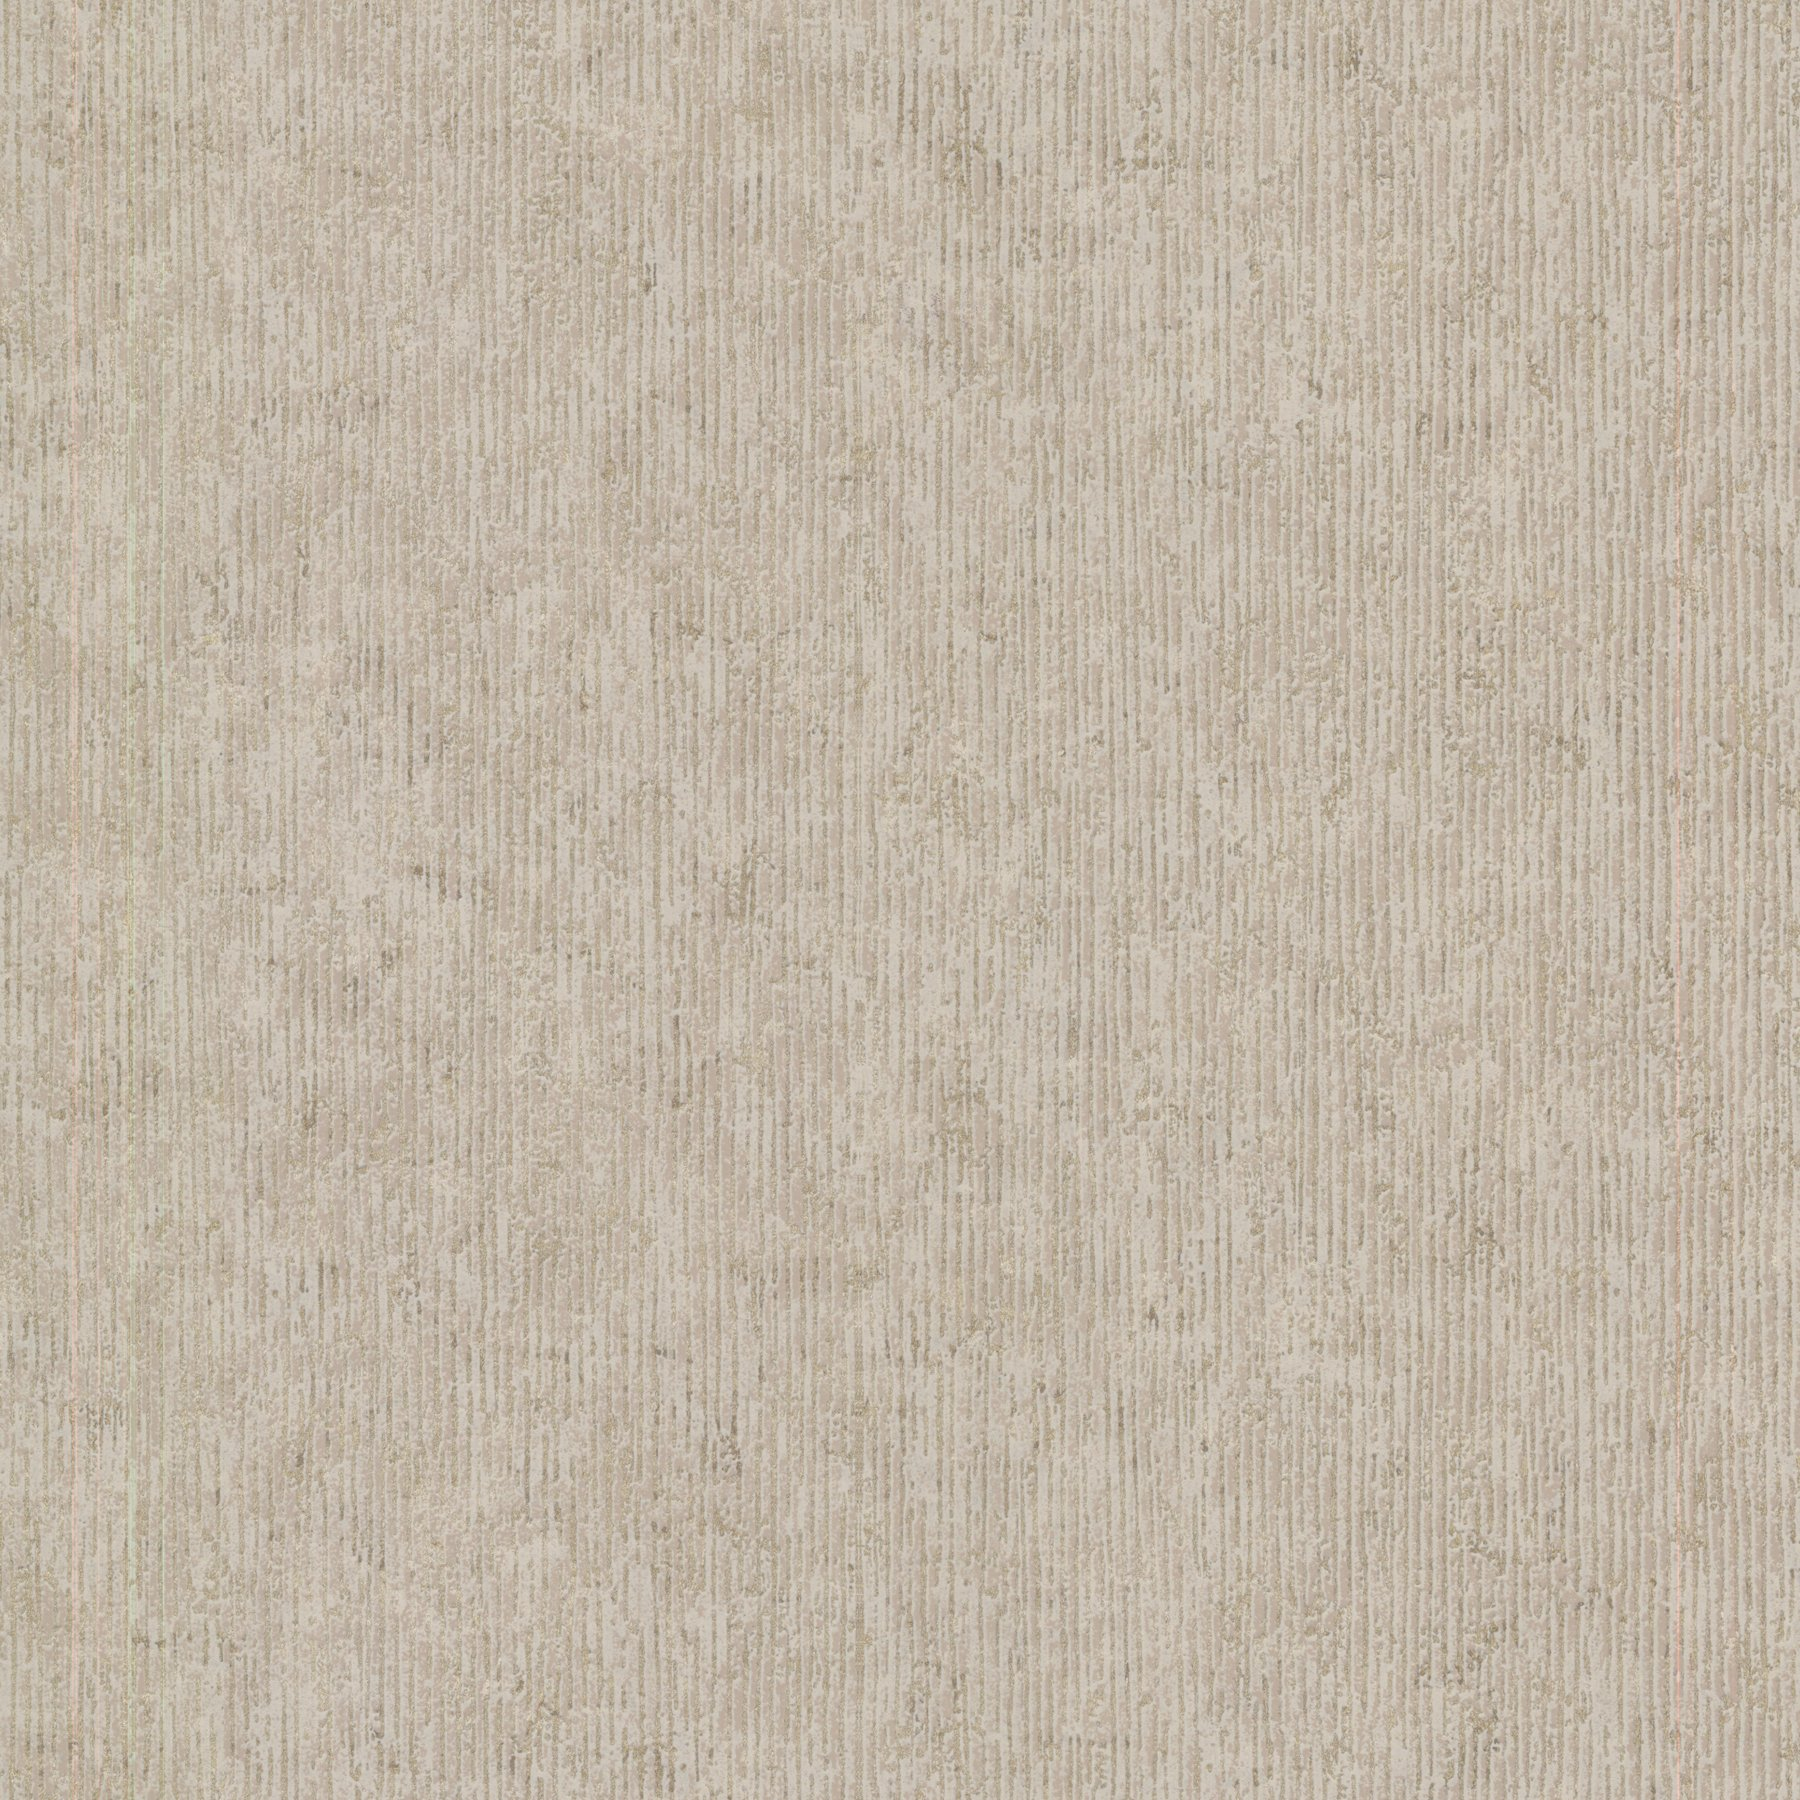 Kenneth James 672-20043 Aliotta Stripe Texture Wallpaper, Bronze by Kenneth James